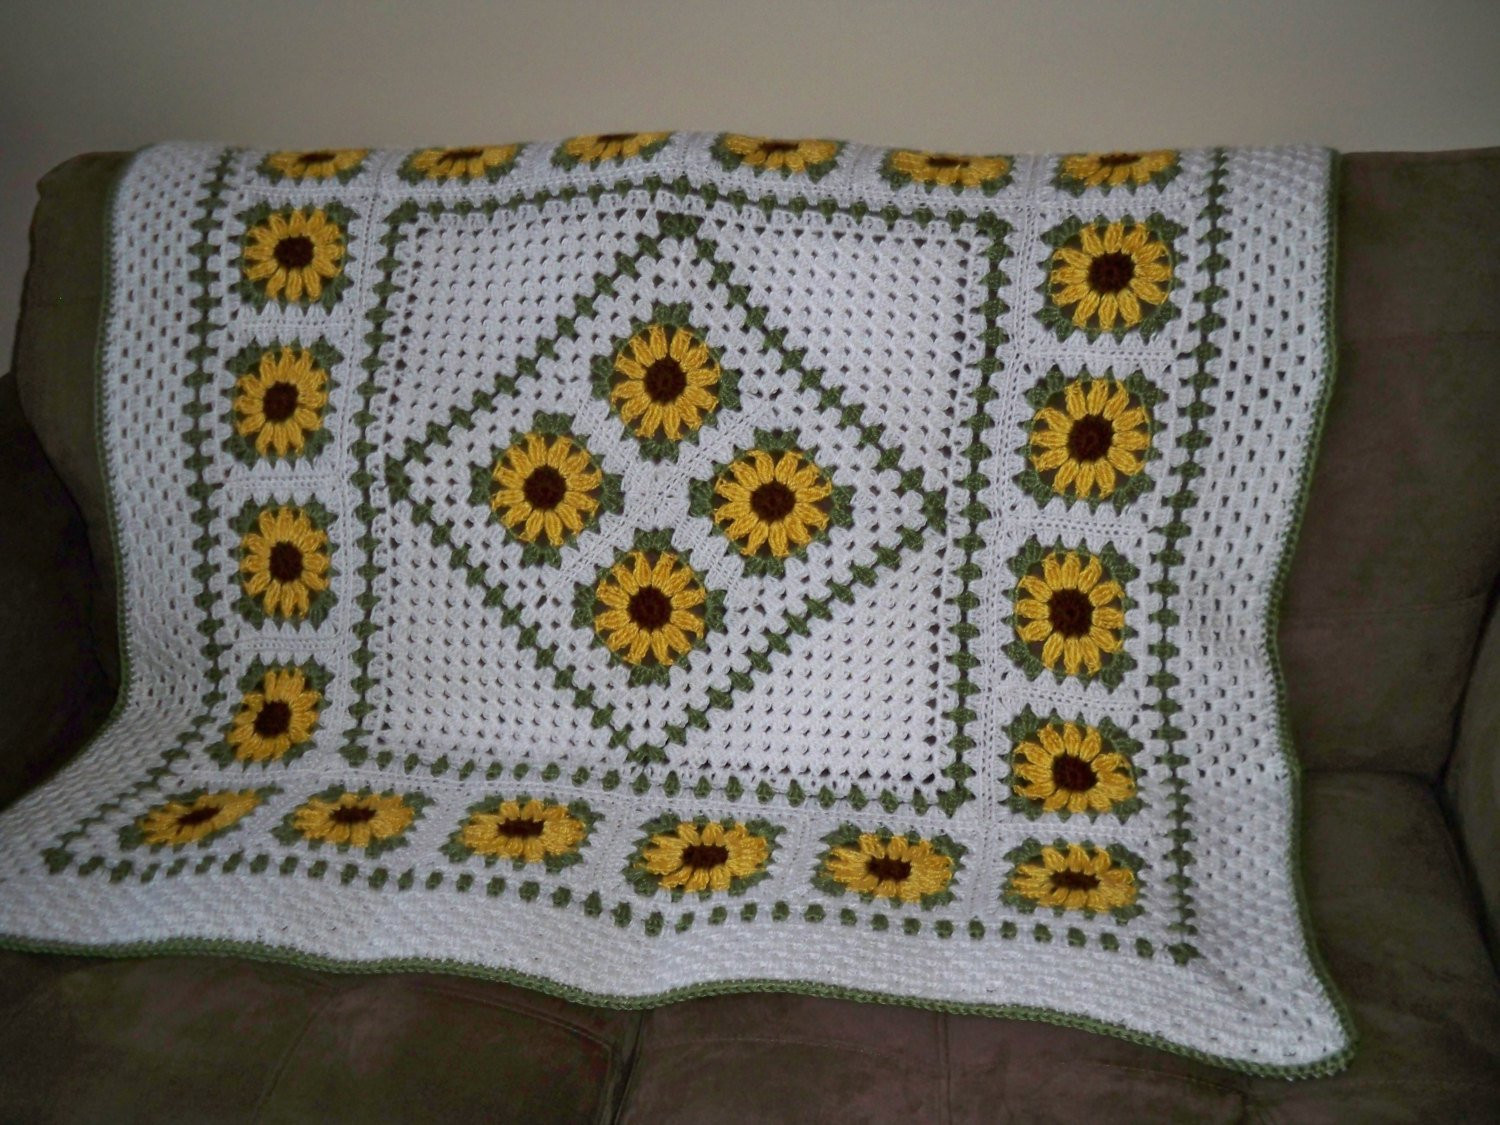 Fresh Crochet Pattern Sunflower Lapghan Sunflower Crochet Blanket Of Elegant Hand Crocheted Sunflower Granny Square Blanket Afghan Throw Sunflower Crochet Blanket